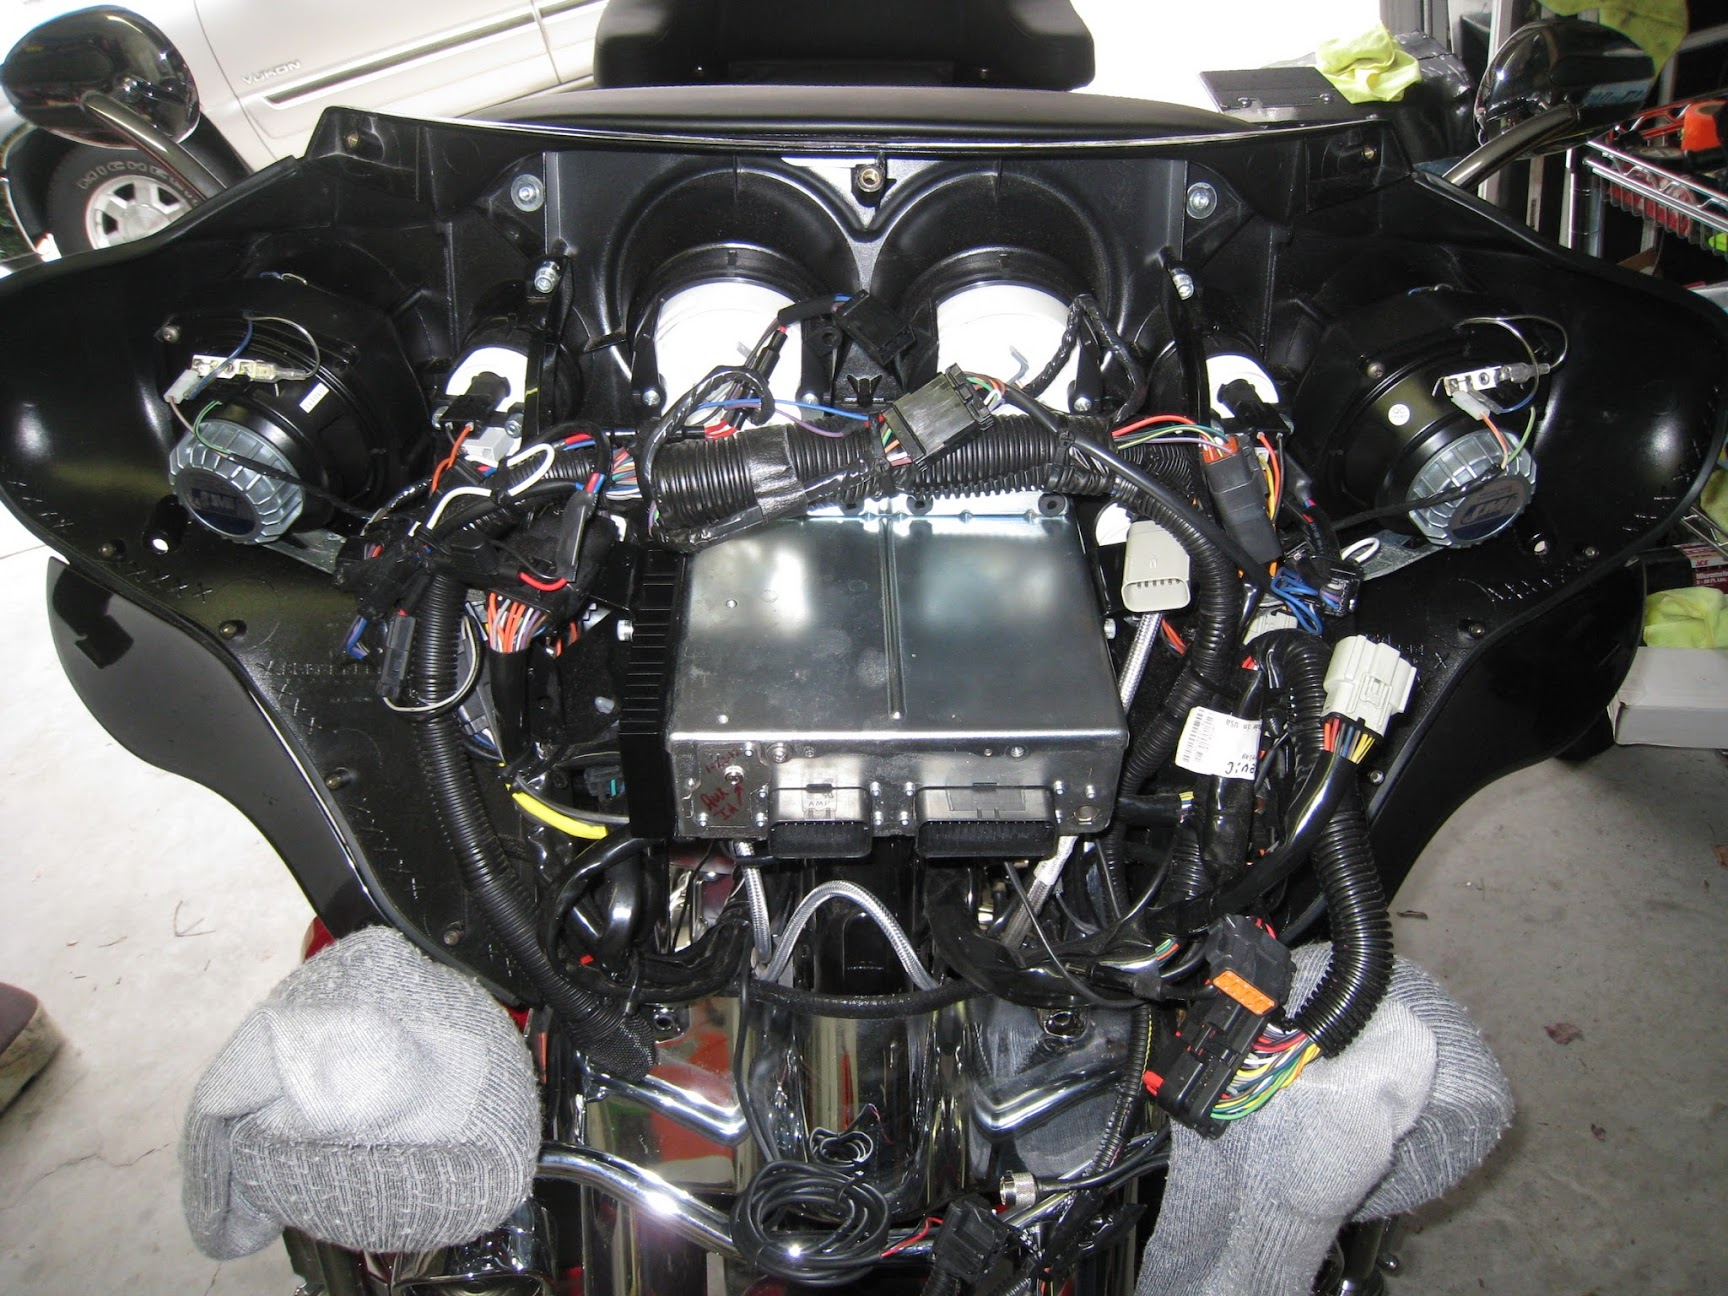 2013 Harley Heated Grips Wiring Diagram Harley Davidson Touring Suspension Noises Diagnostic Guide